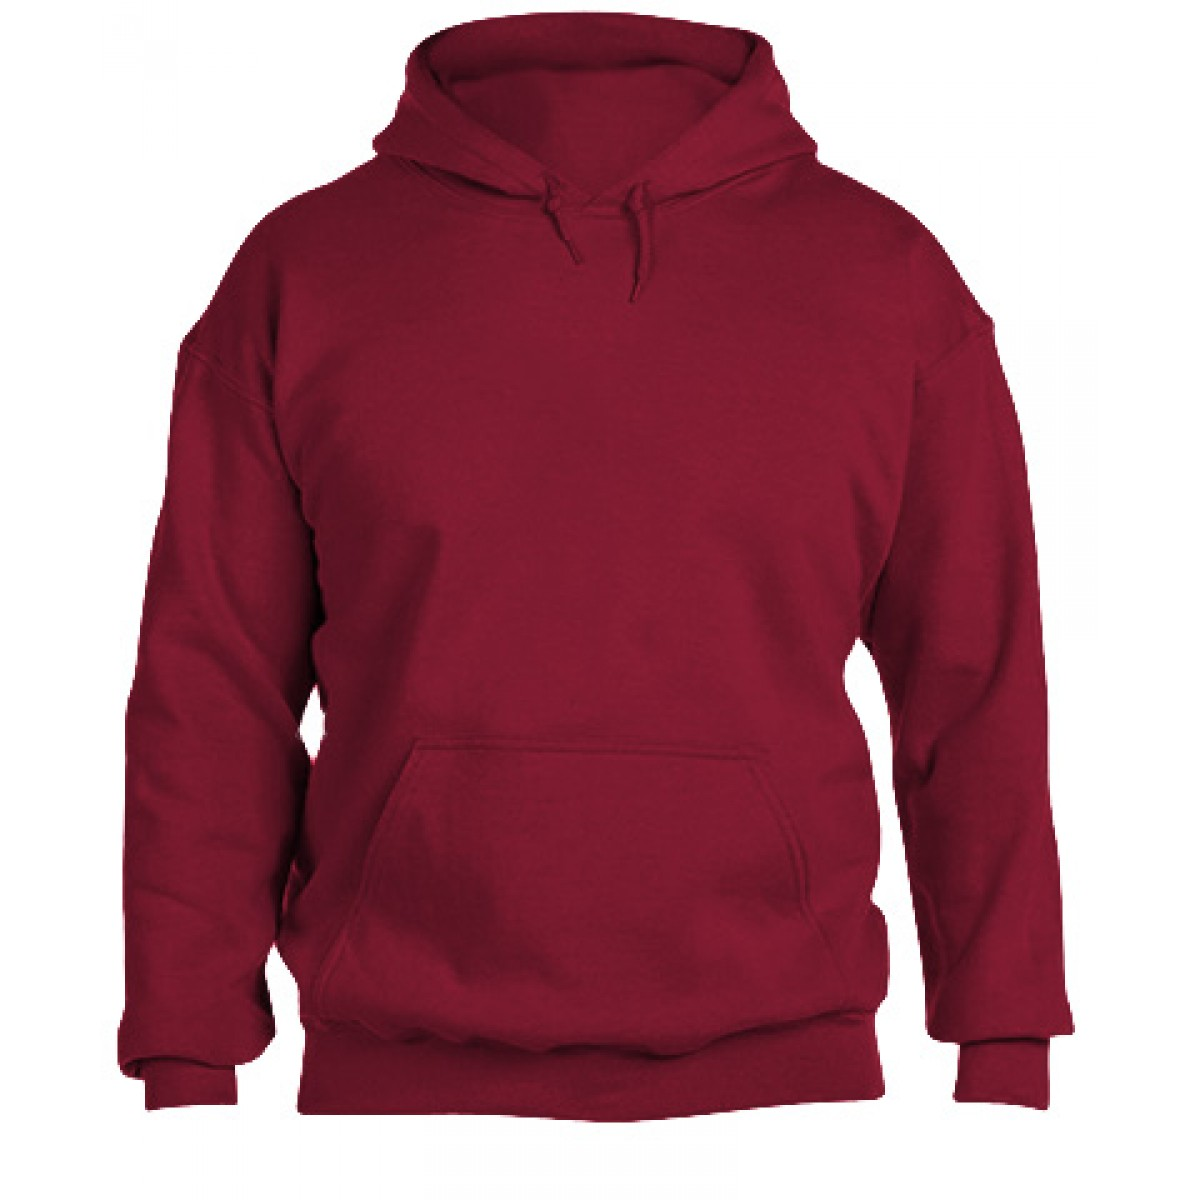 Hooded Sweatshirt 50/50 Heavy Blend -Cardinal Red-XL